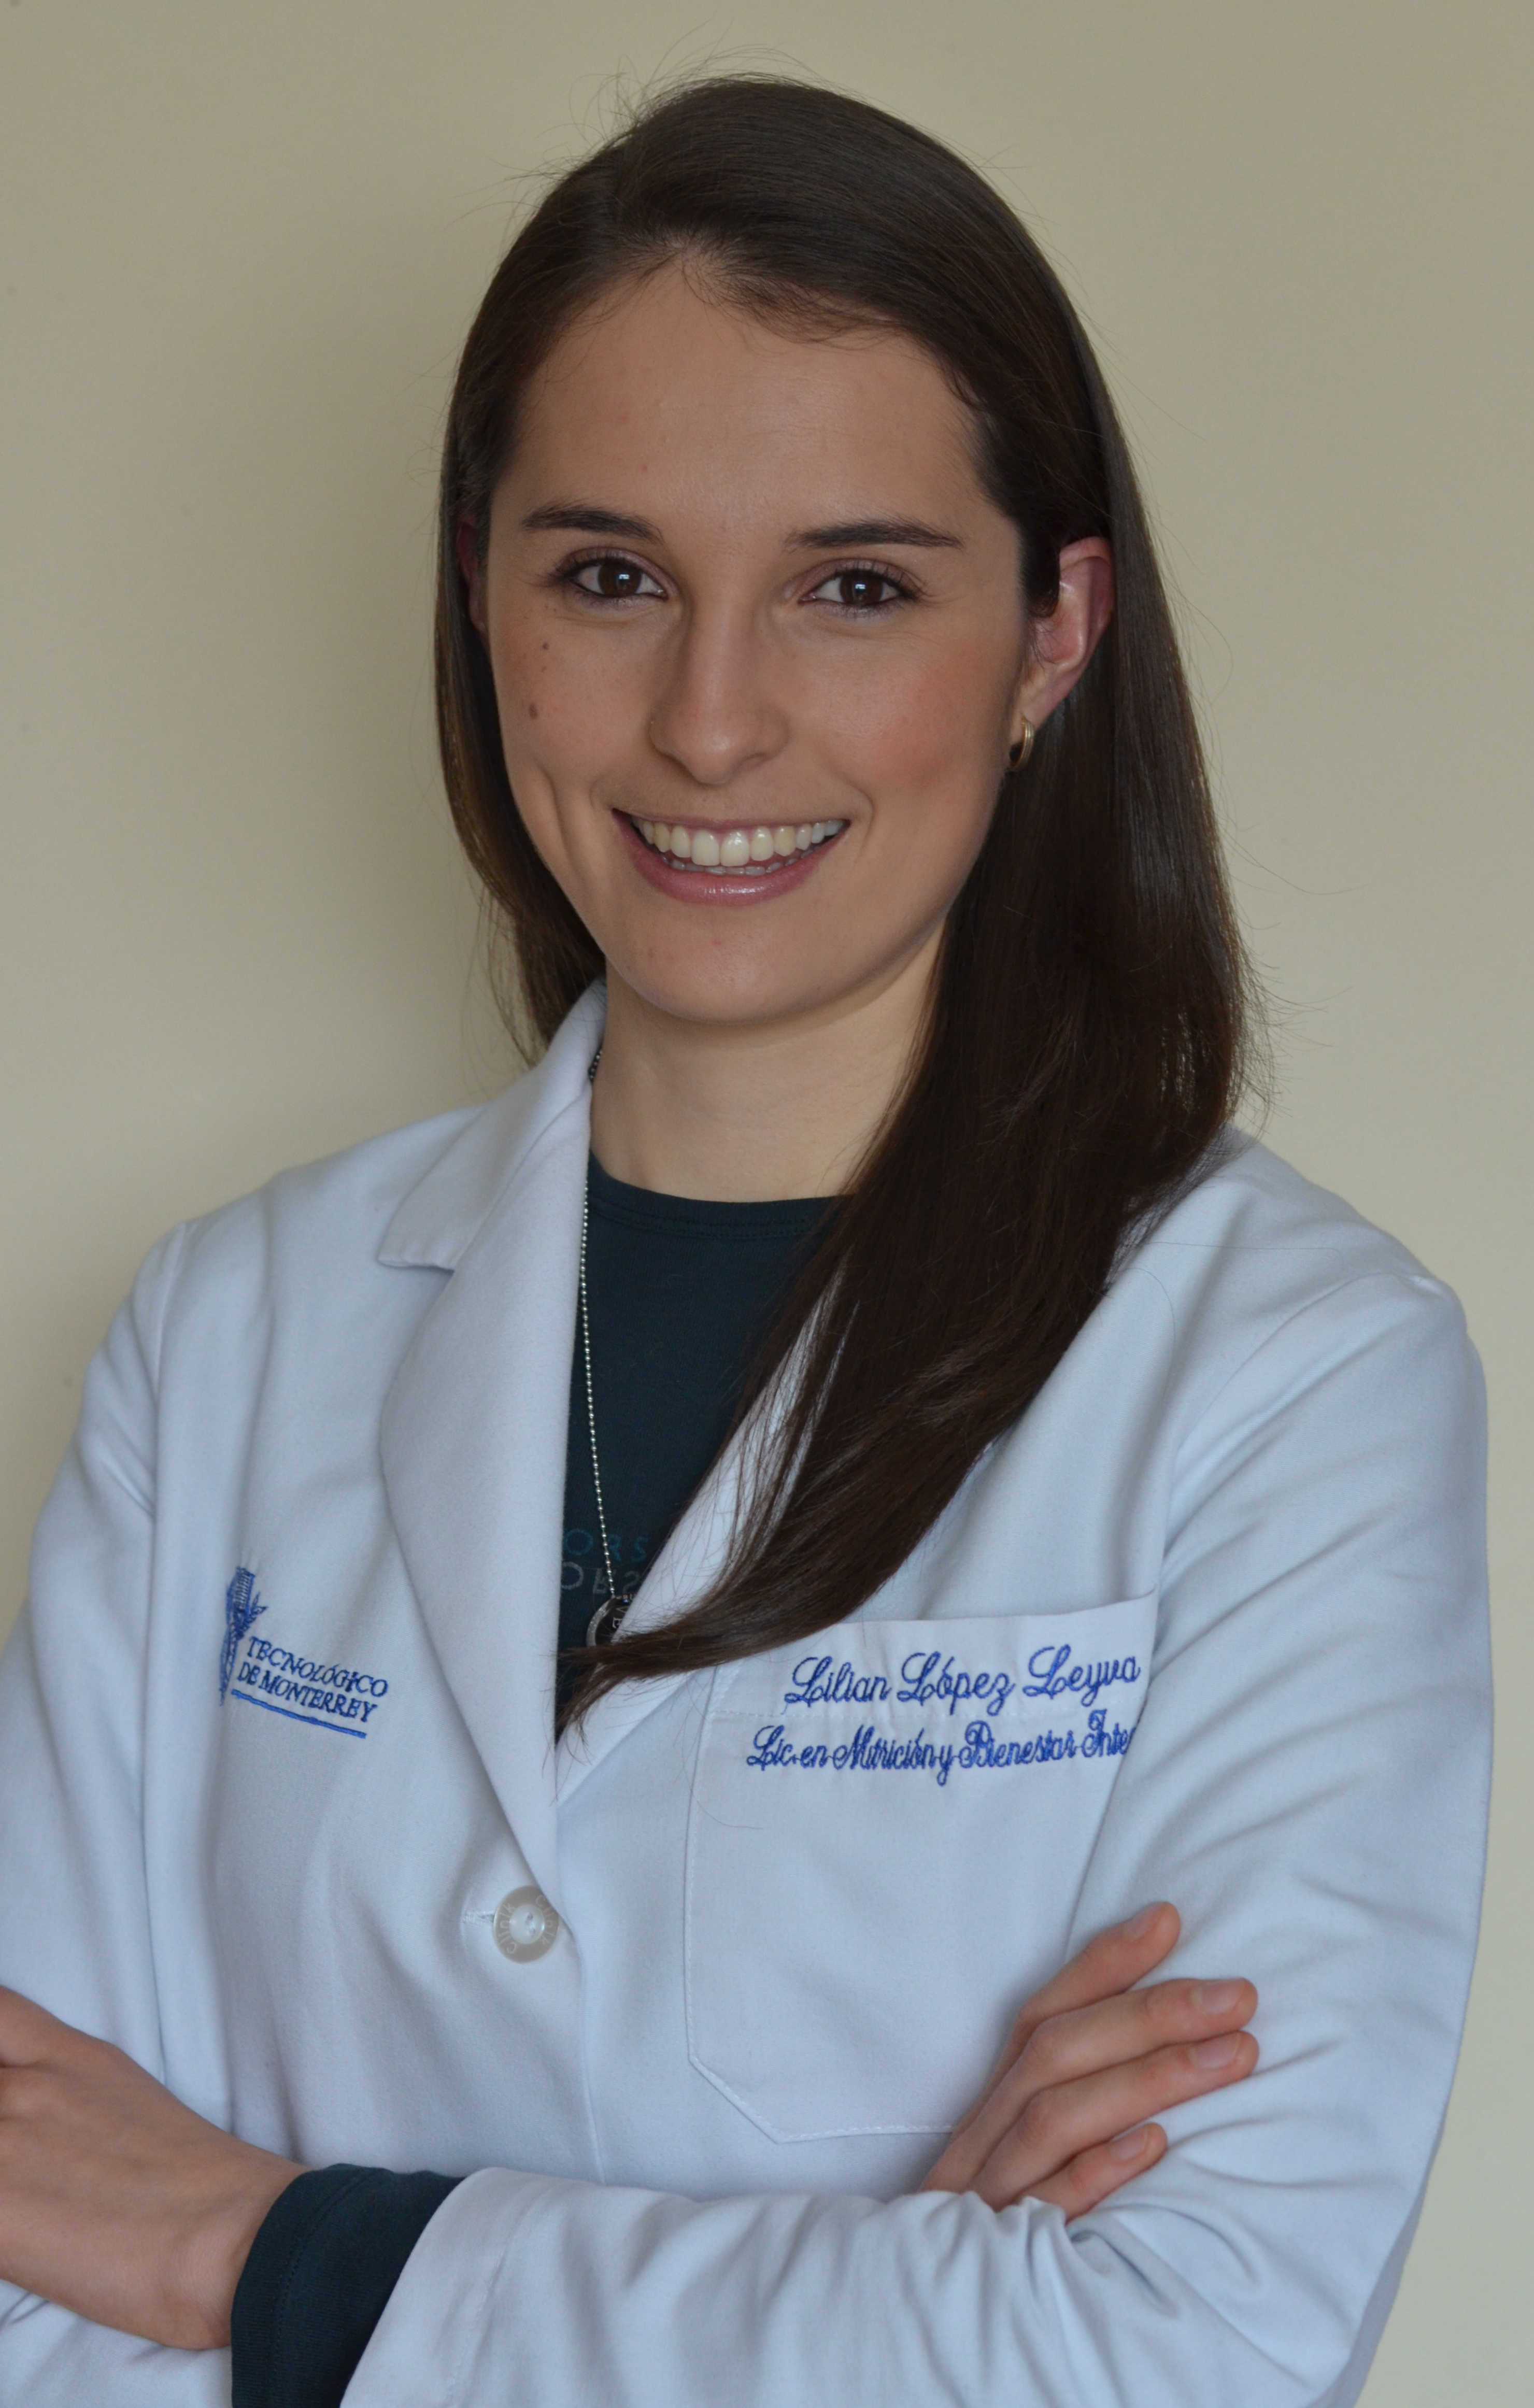 Lilian Lopez Leyva posing with arms crossed wearing a lab coat